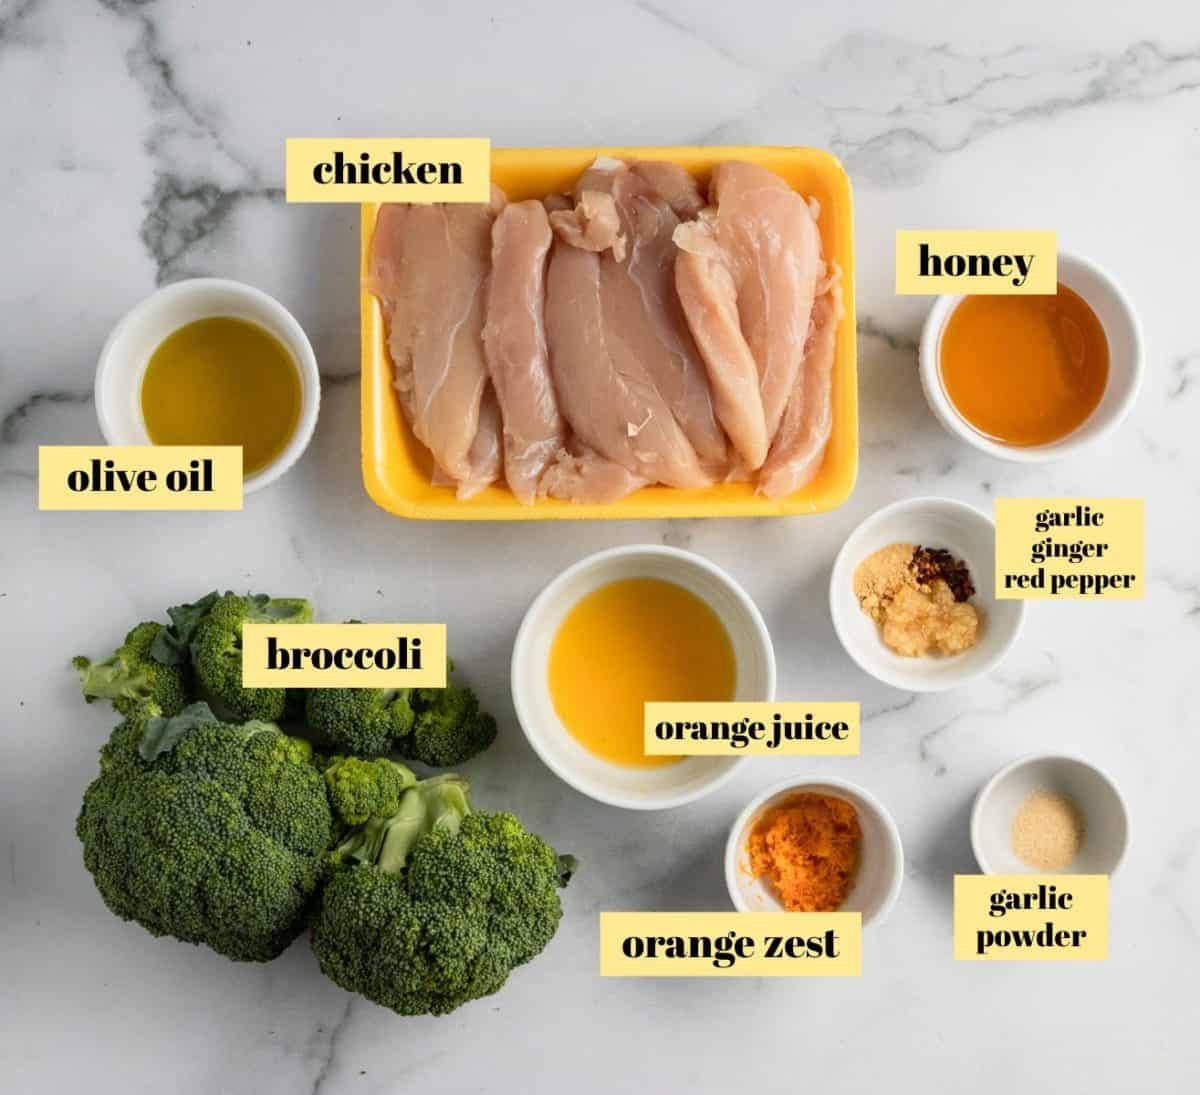 Ingredients used to make chicken and broccoli recipe.